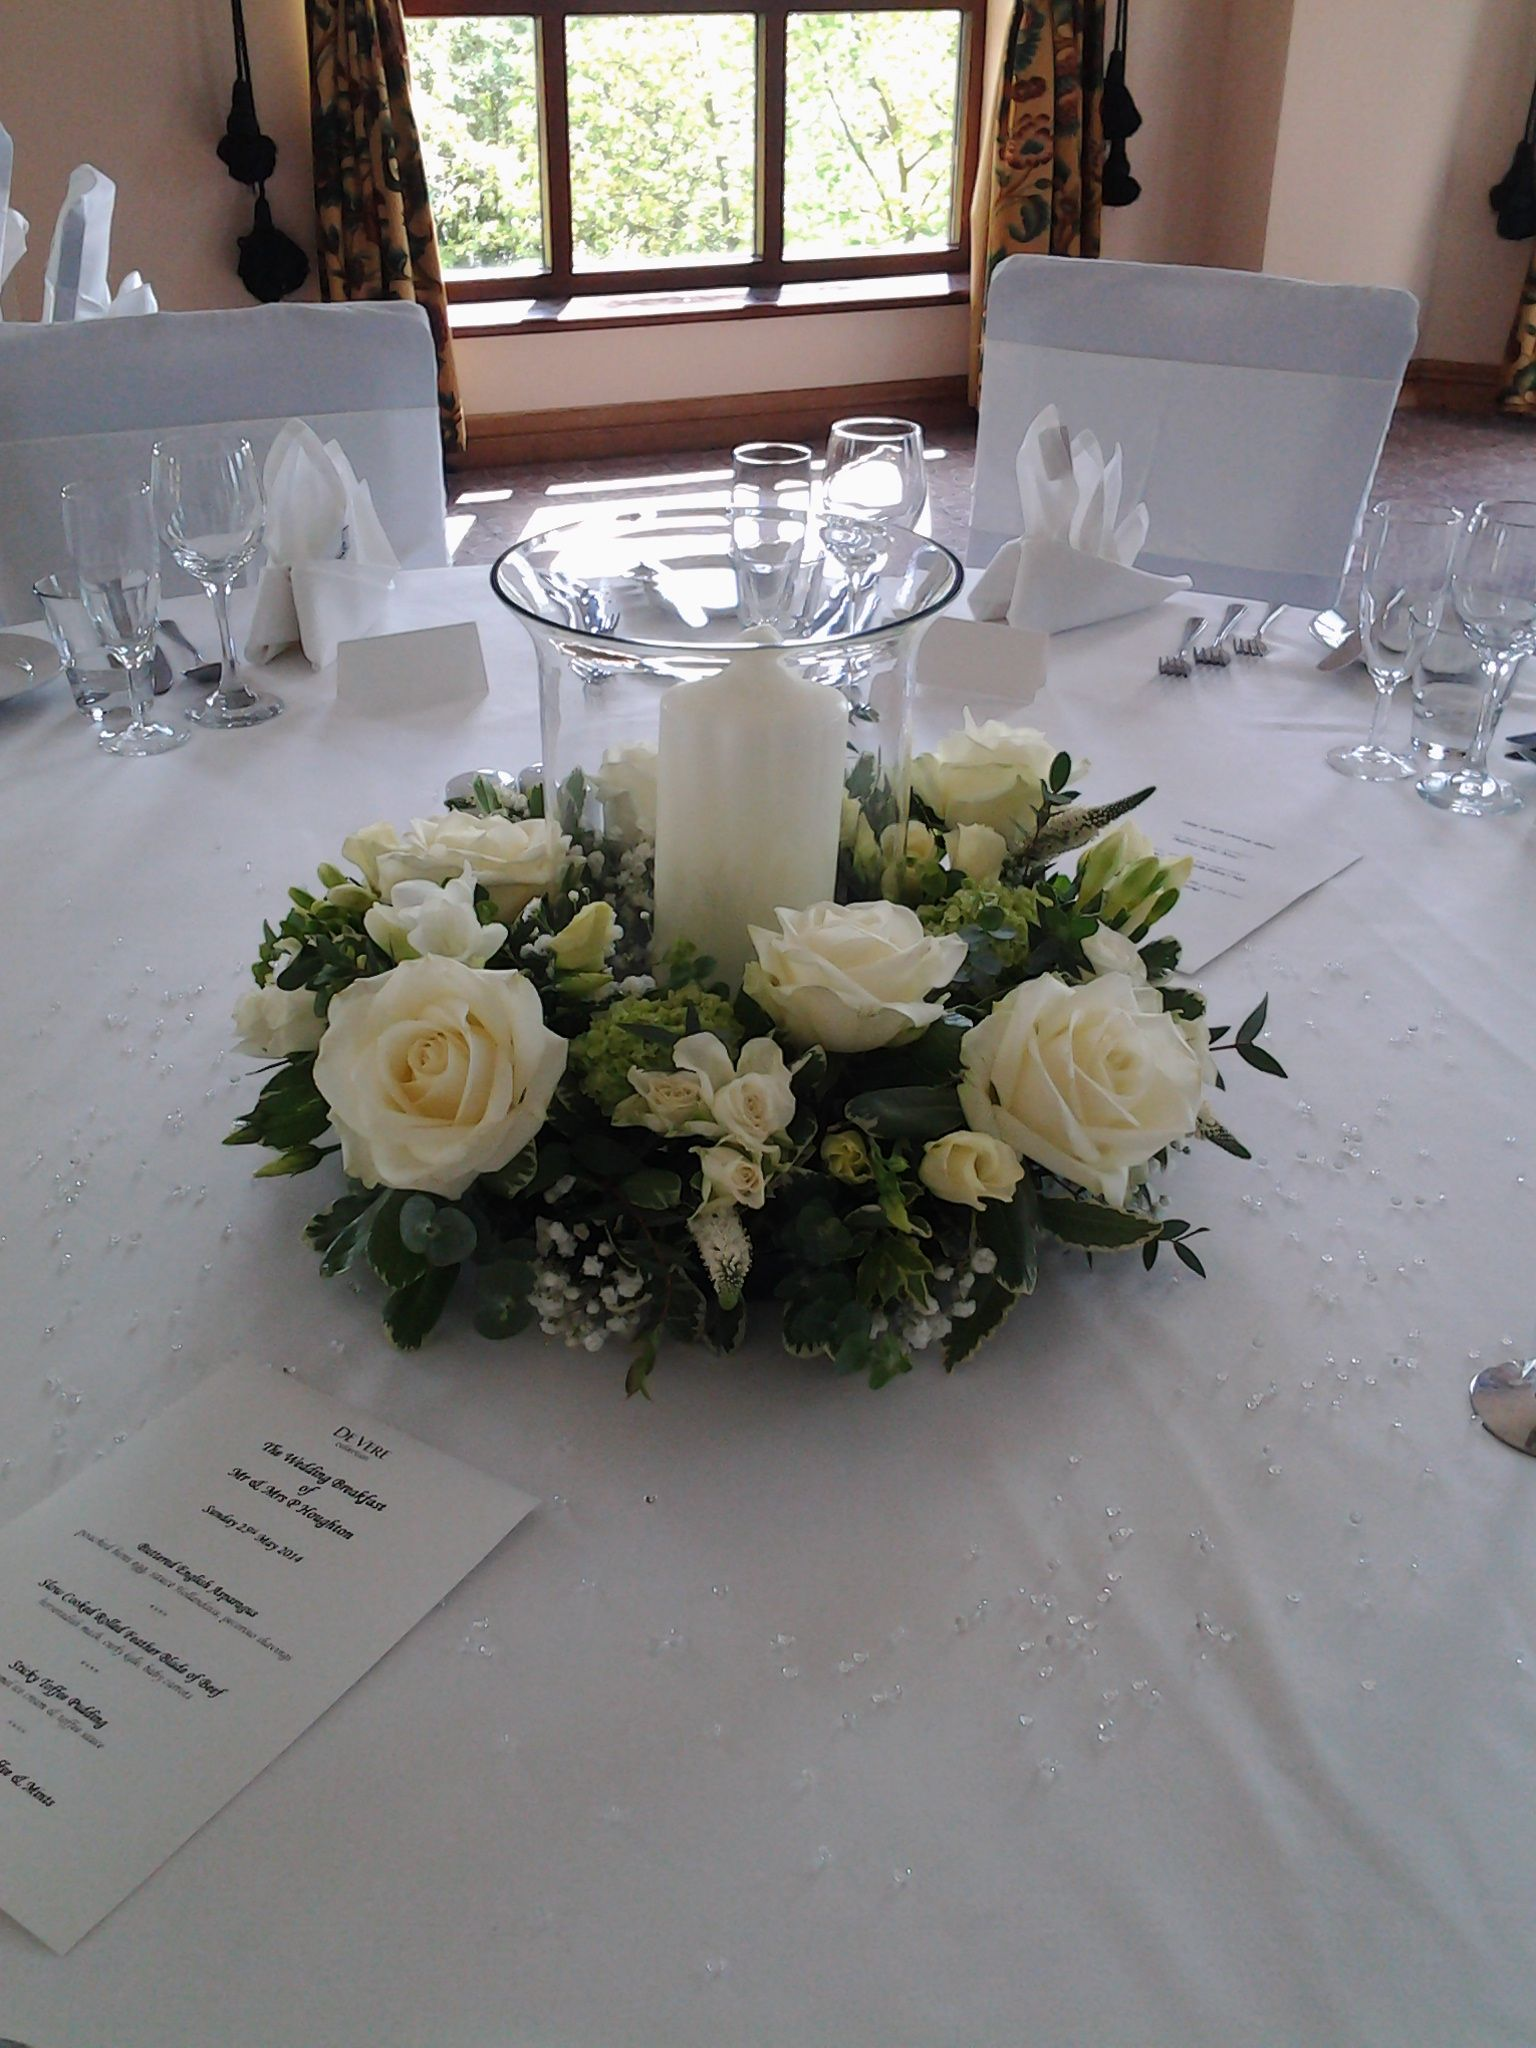 Wedding Reception Table Decoration Made Using Fresh Flowers And Foliage With Hurricane Lamp Candle